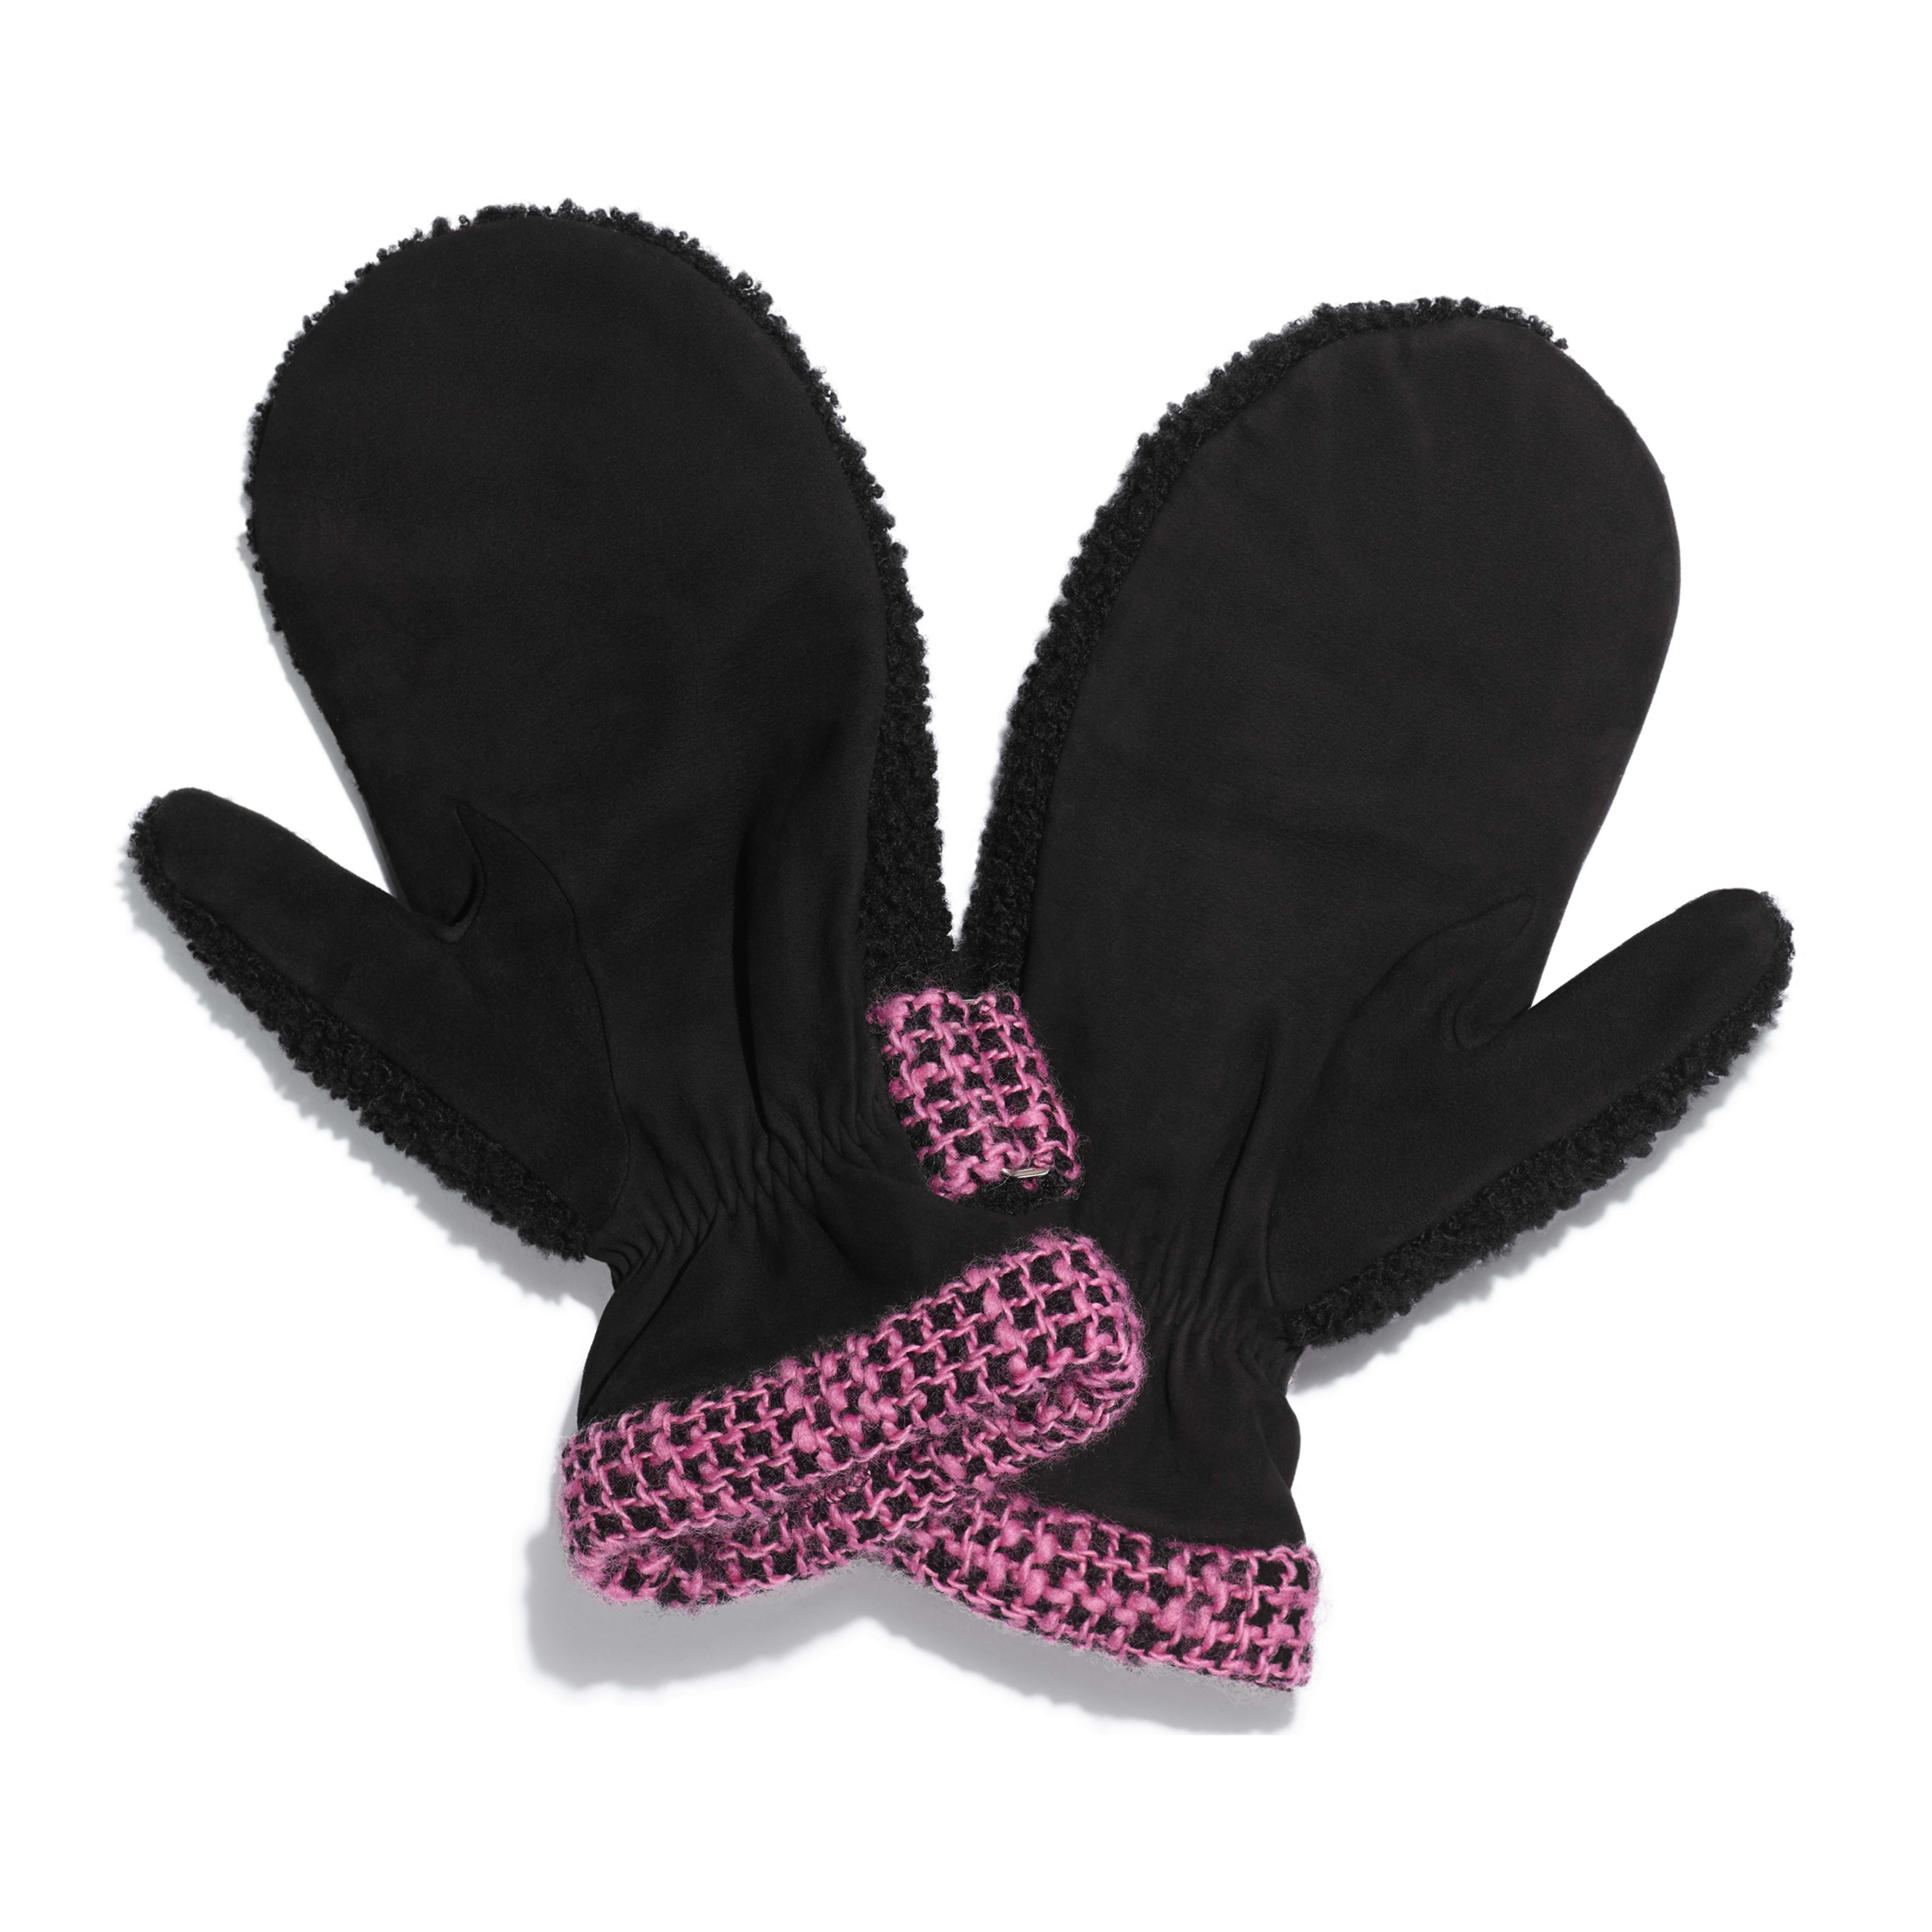 Mittens - Black & Pink - Shearling & Tweed - Alternative view - see full sized version